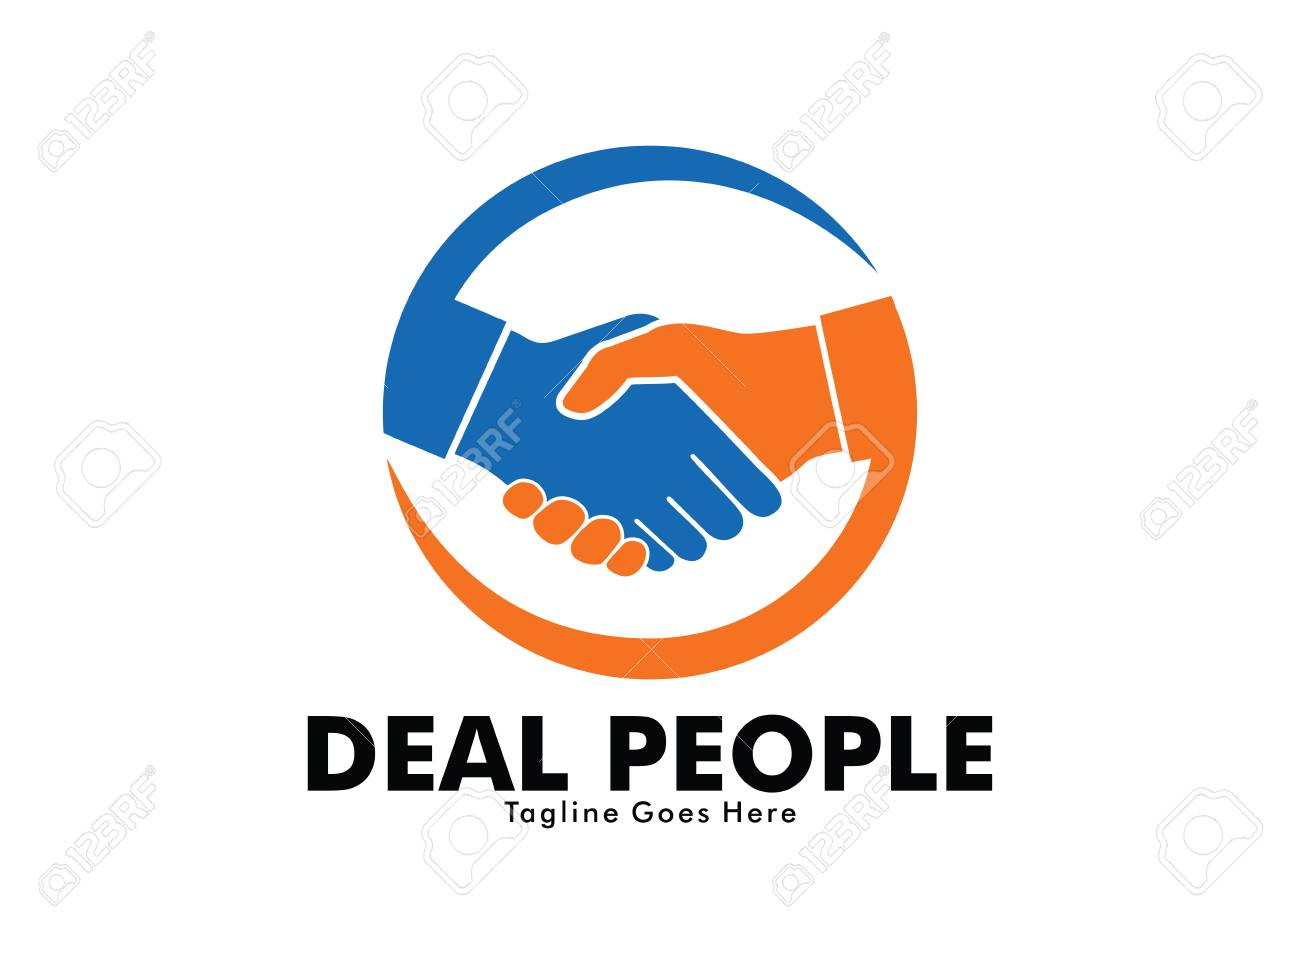 Vector Logo Design Of Deal Handshake Sign Meaning Of Friendship Royalty Free Cliparts Vectors And Stock Illustration Image 95728052